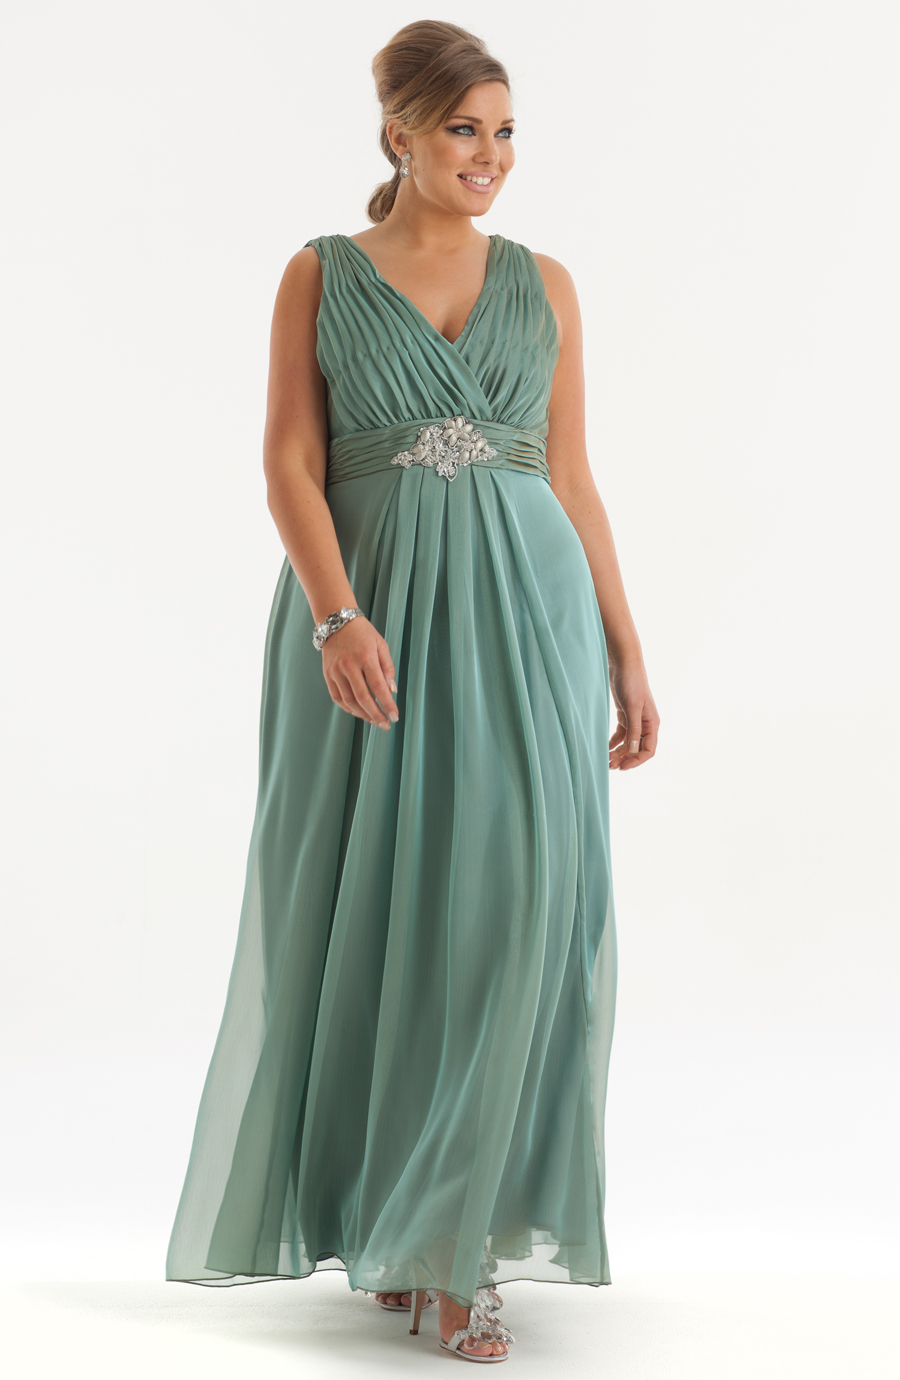 plus size dresses for night out : beautiful and elegant - dresses ask